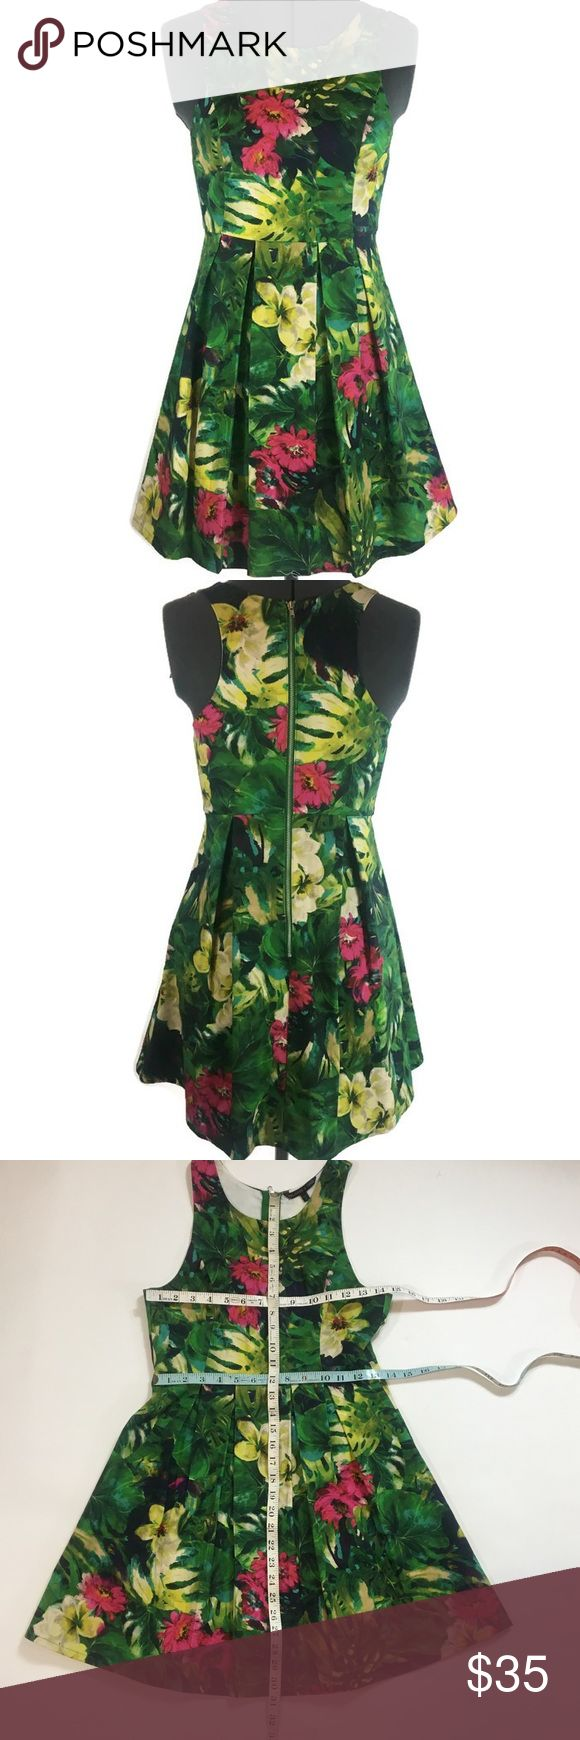 """Felicity & Coco- Tropical Print Dress Felicity & Coco- dress with bodice princess style lines, skirt pleats, and center back exposed zipper. Tropical palm/floral print. Approximate measurements and care instructions in photos. Small """"x"""" marked in sharpie under tag (please see photo). Felicity & Coco Dresses"""